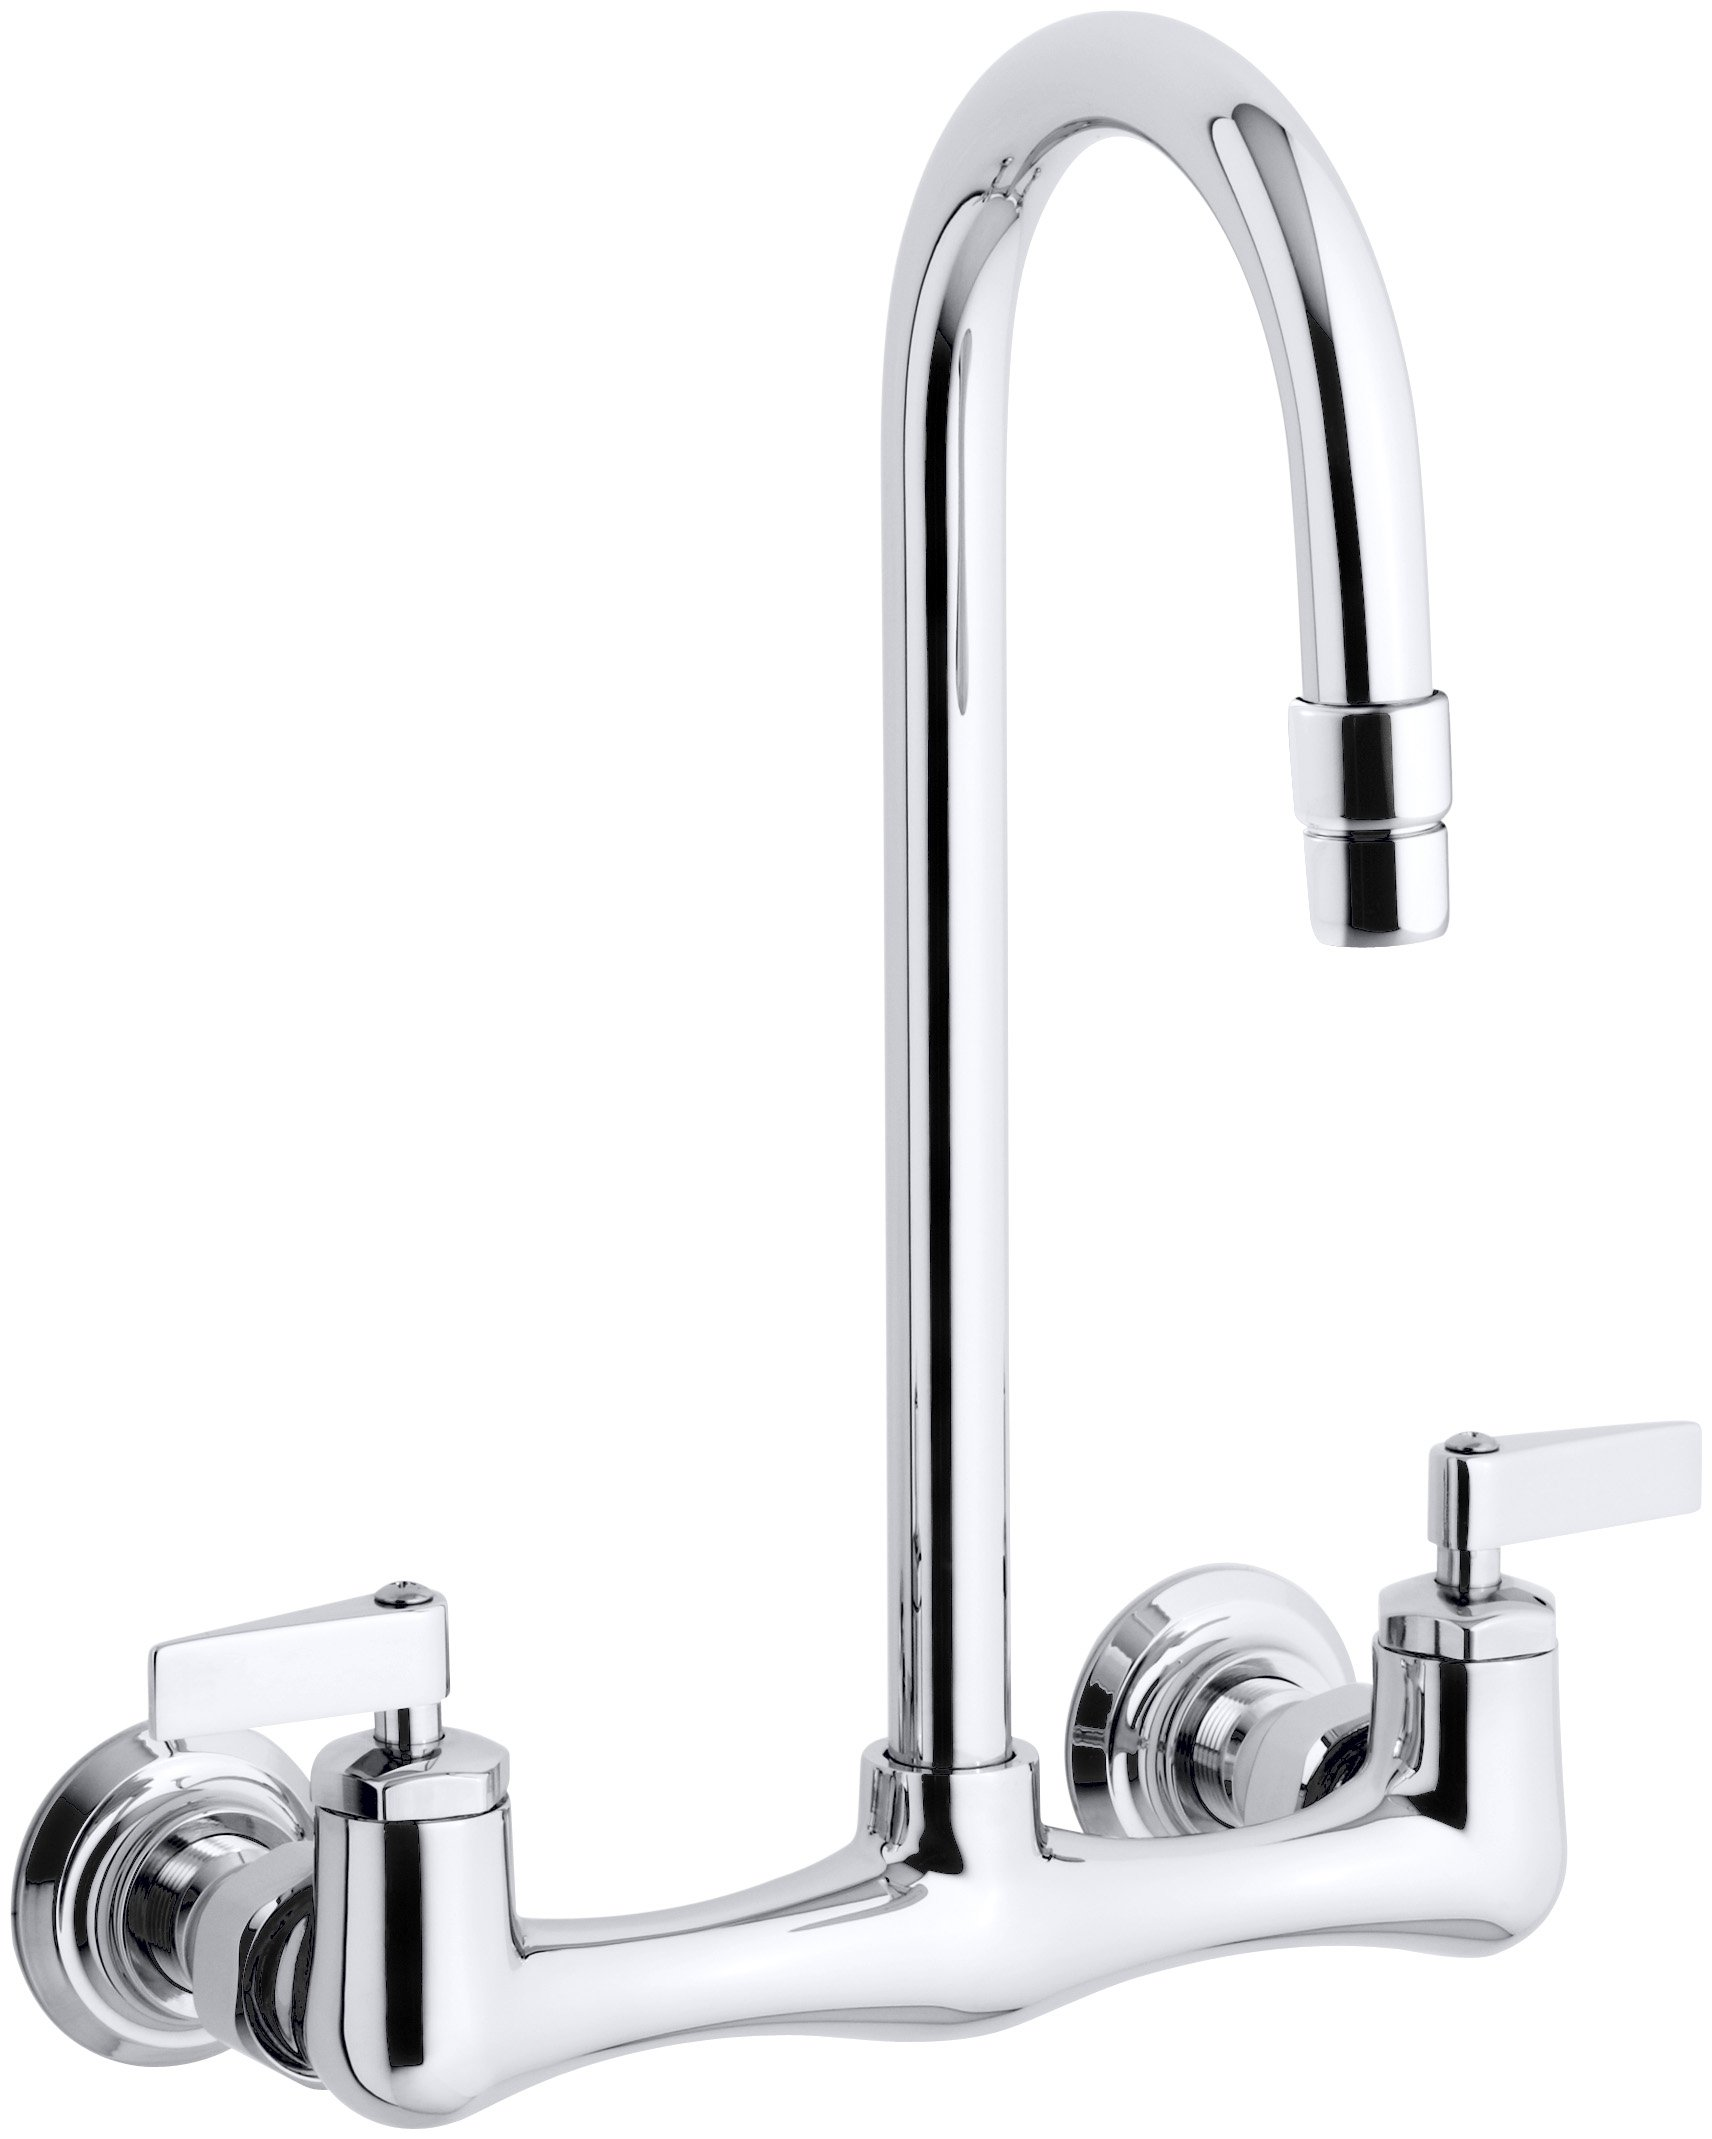 Kohler K-7320-4-CP Triton Utility Sink Faucet with Lever Handles, Polished Chrome by Kohler